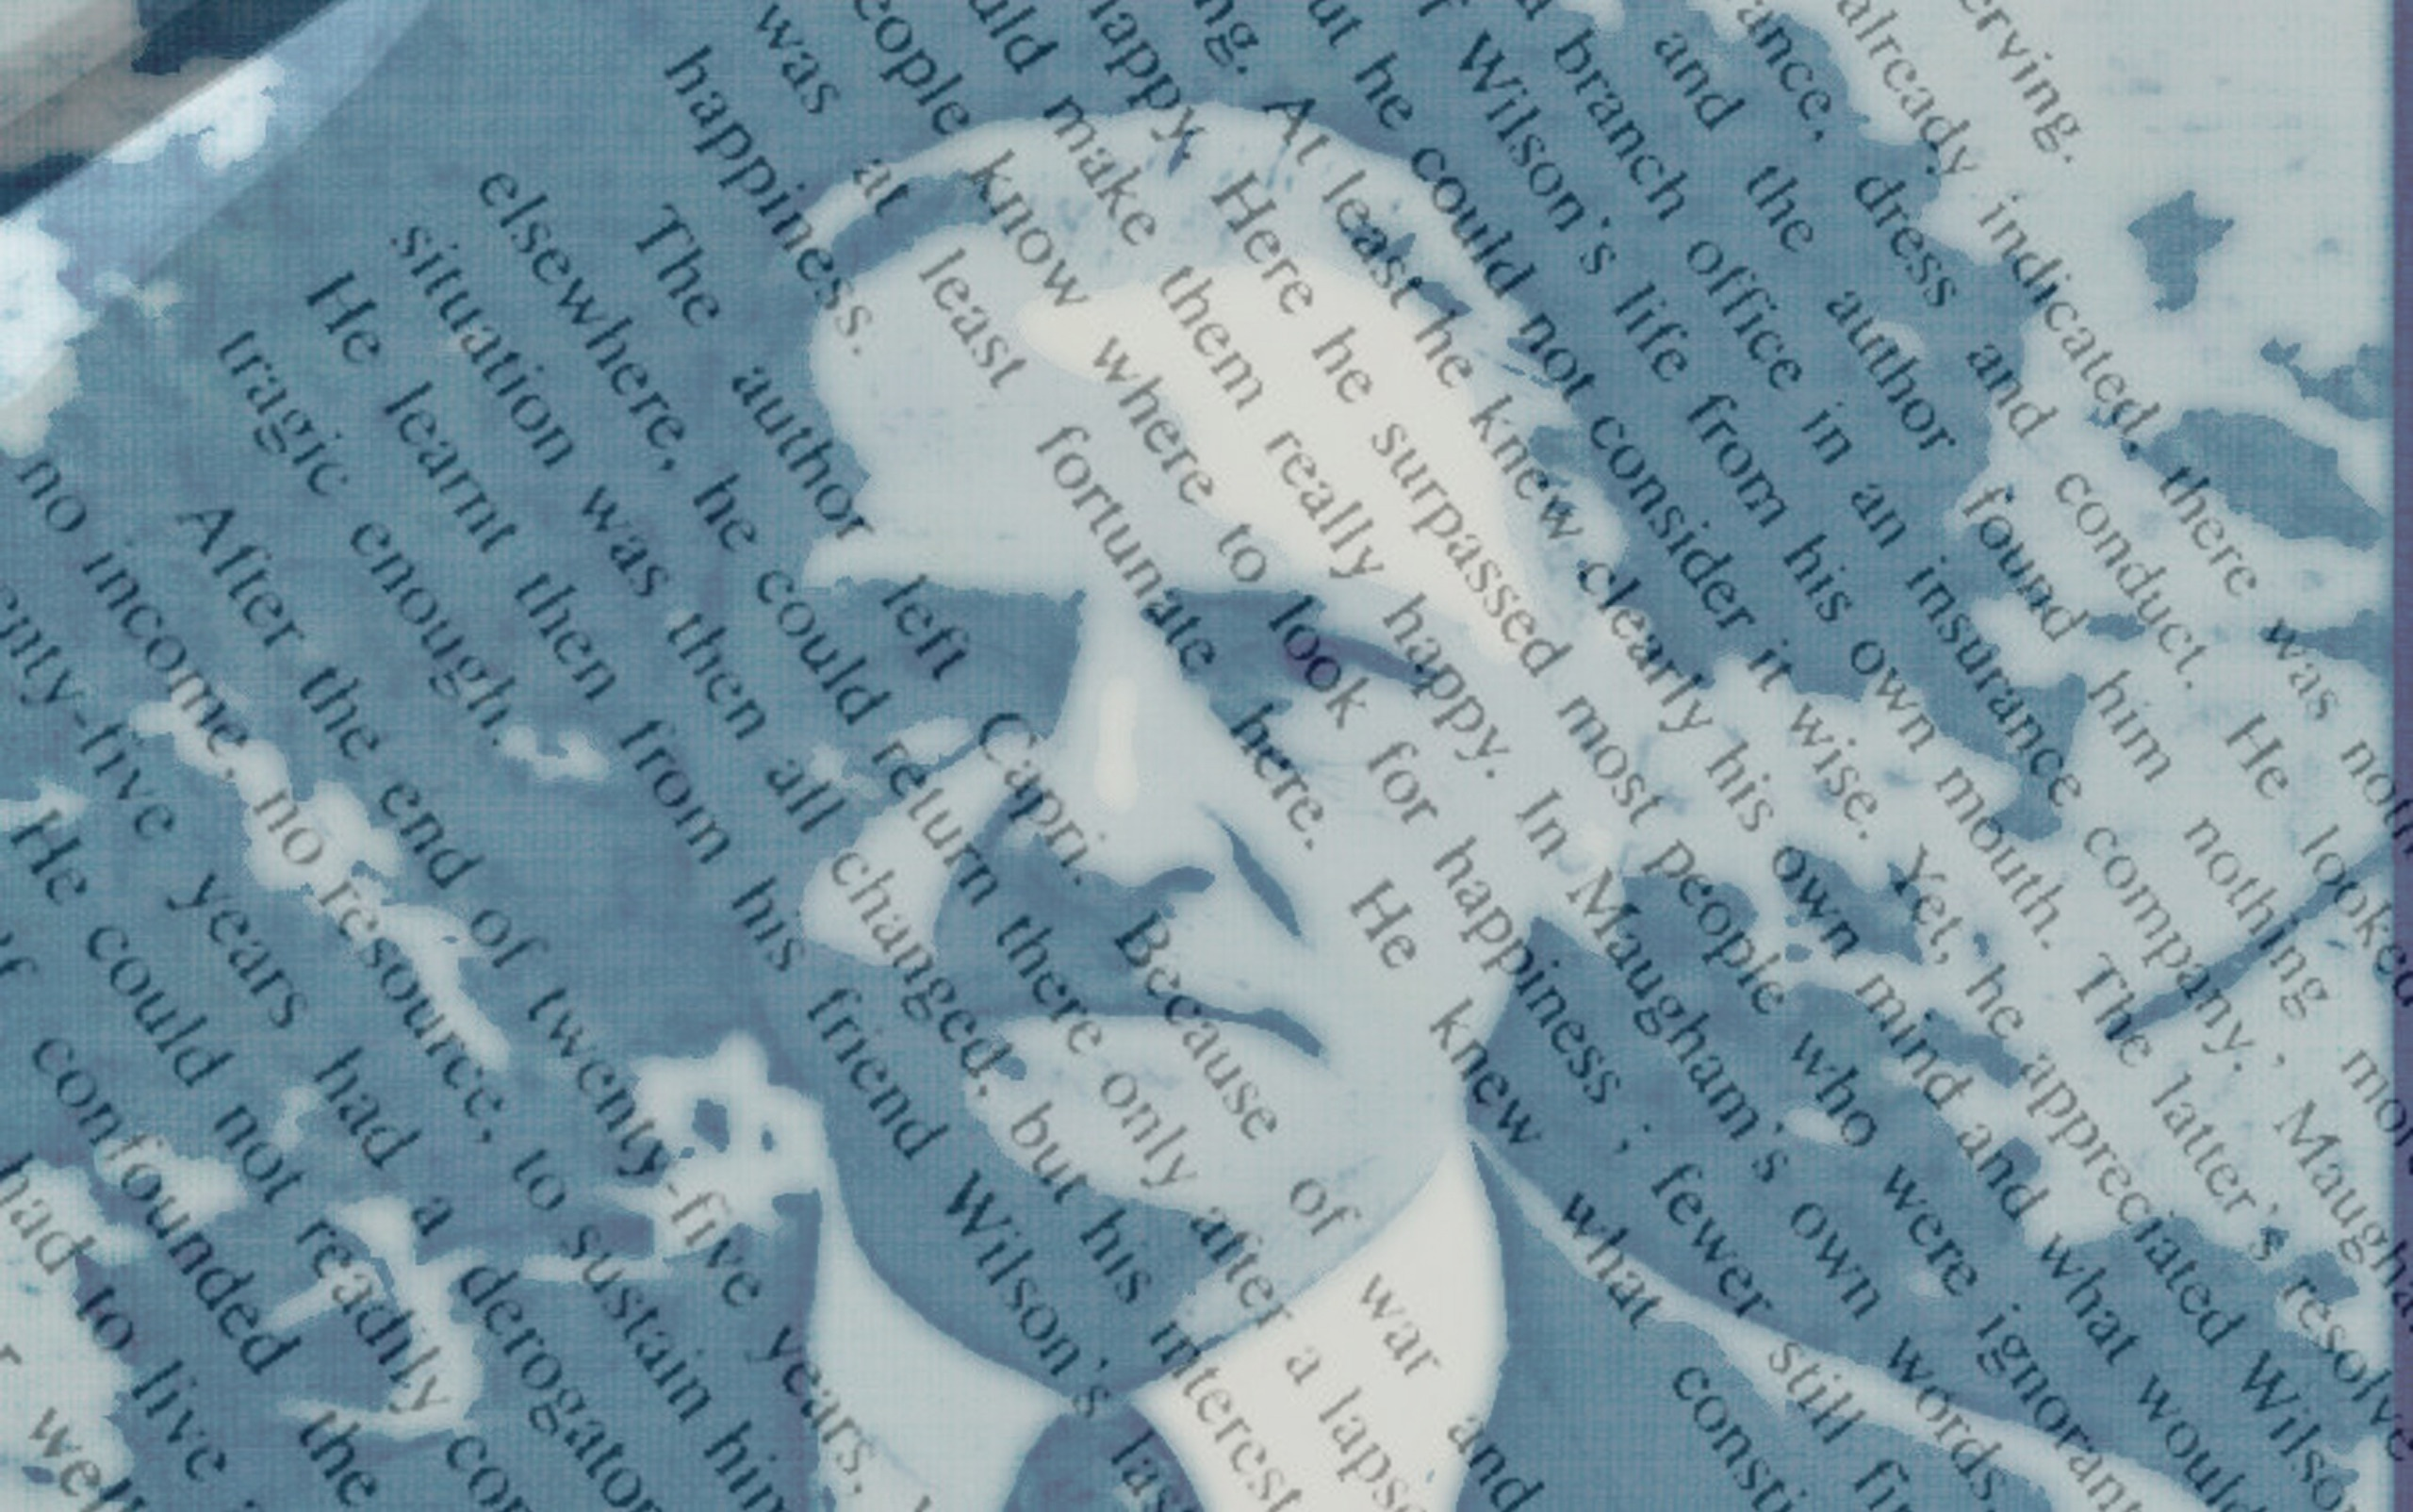 first-person narrator Maugham